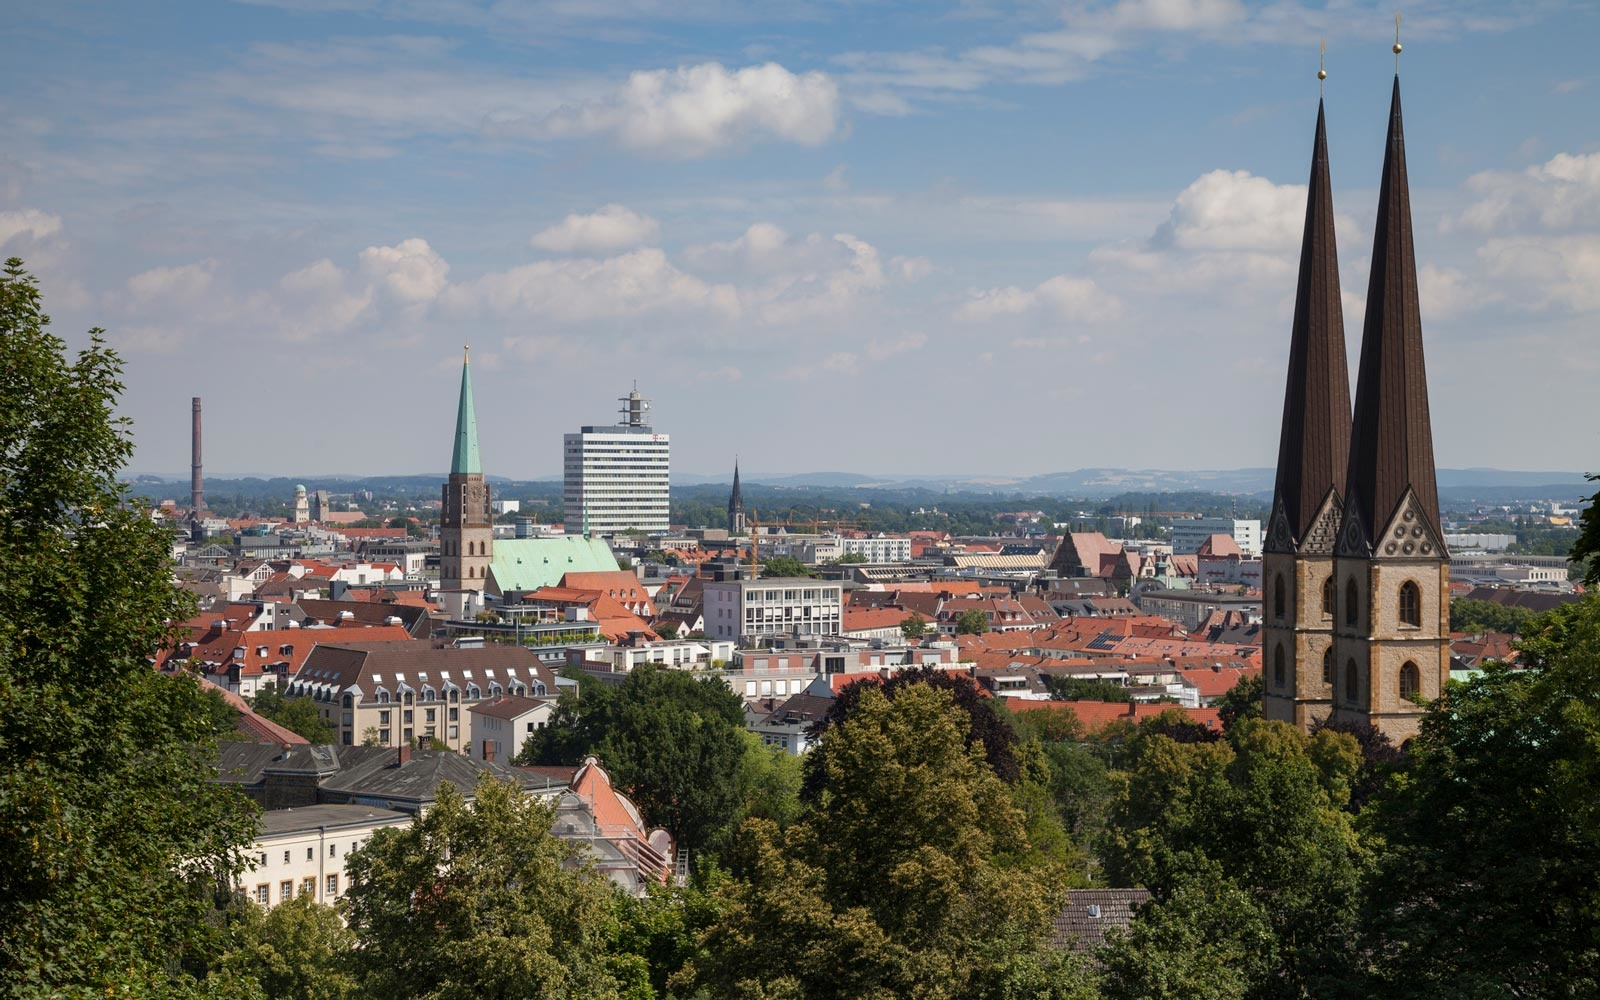 This German city will give $1.1 million to anybody who can prove it doesn't exist